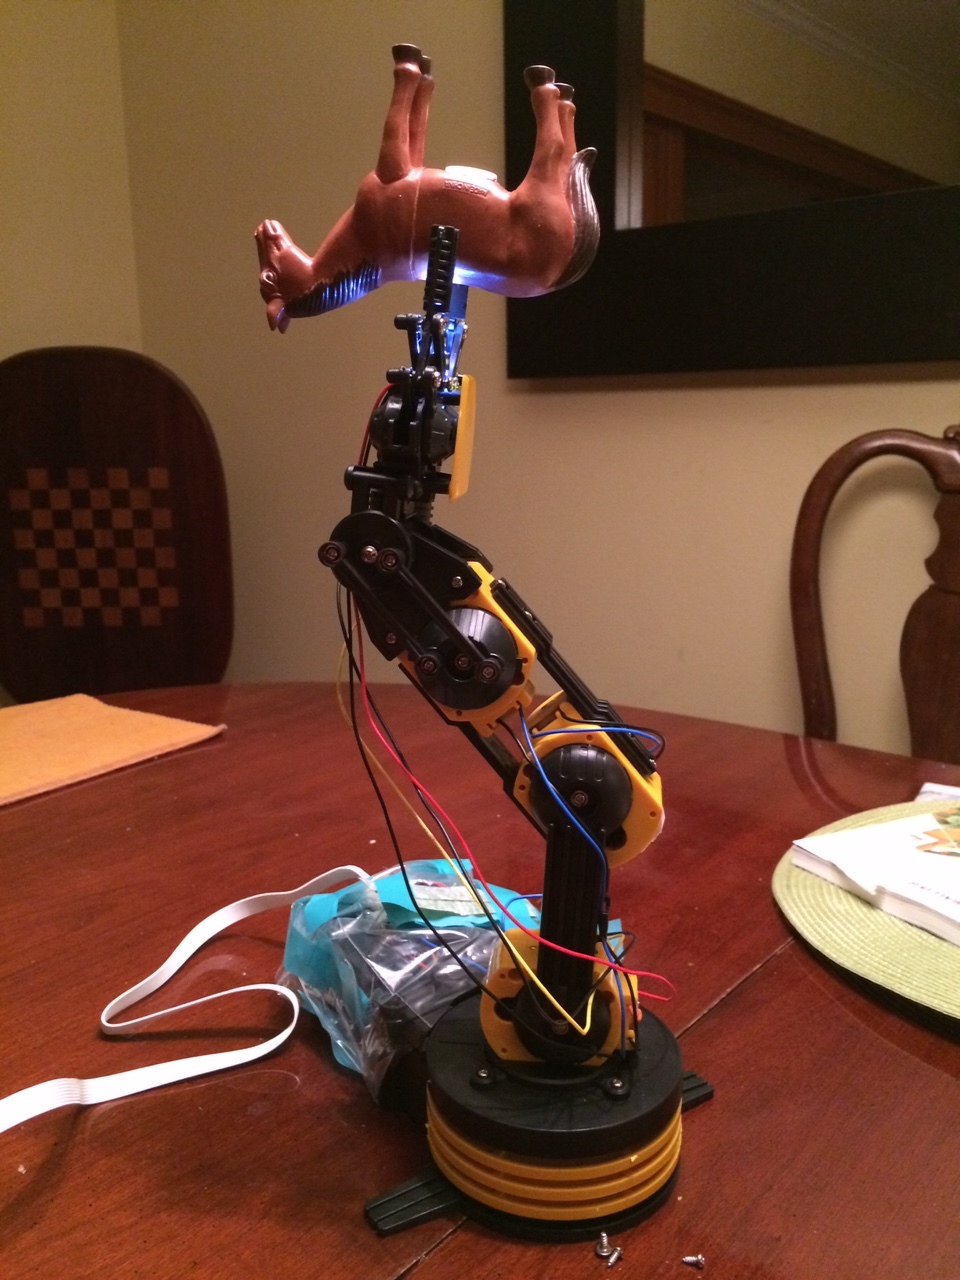 Interesting things happen when you mix robotics and horse.